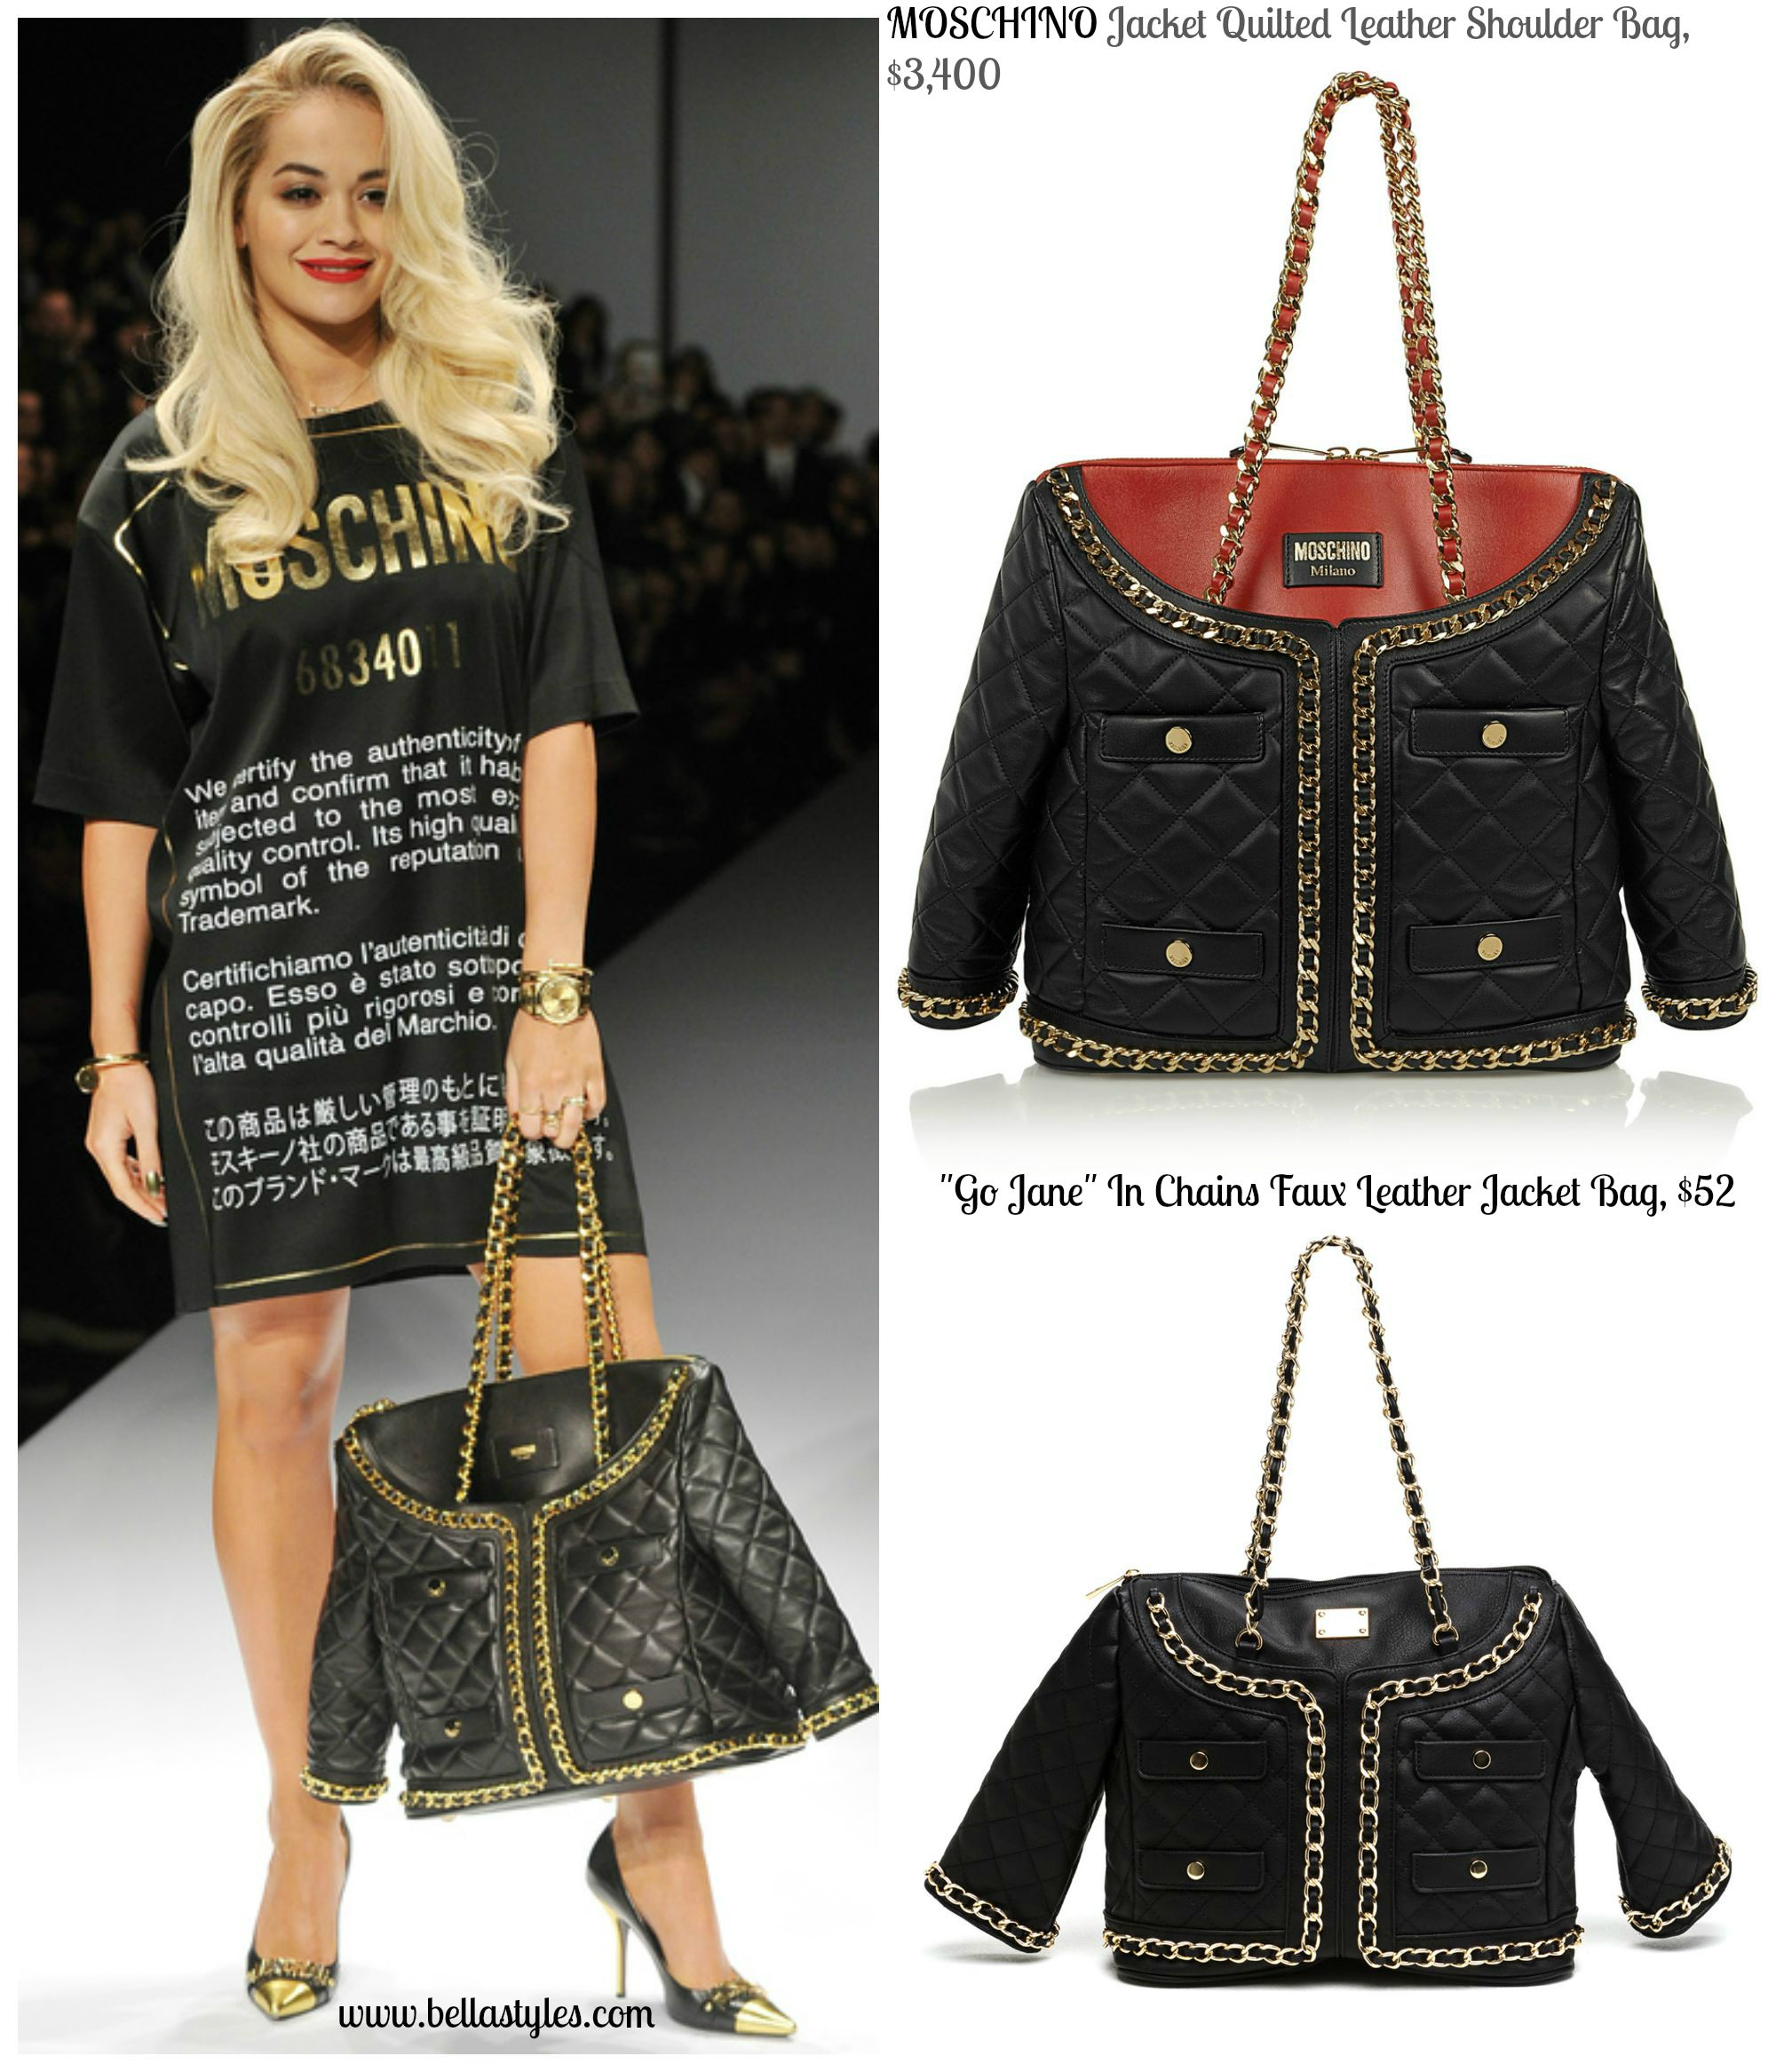 """c41dd4e7c The Look For Less: """"Moschino's Quilted Leather Jacket Handbag ..."""